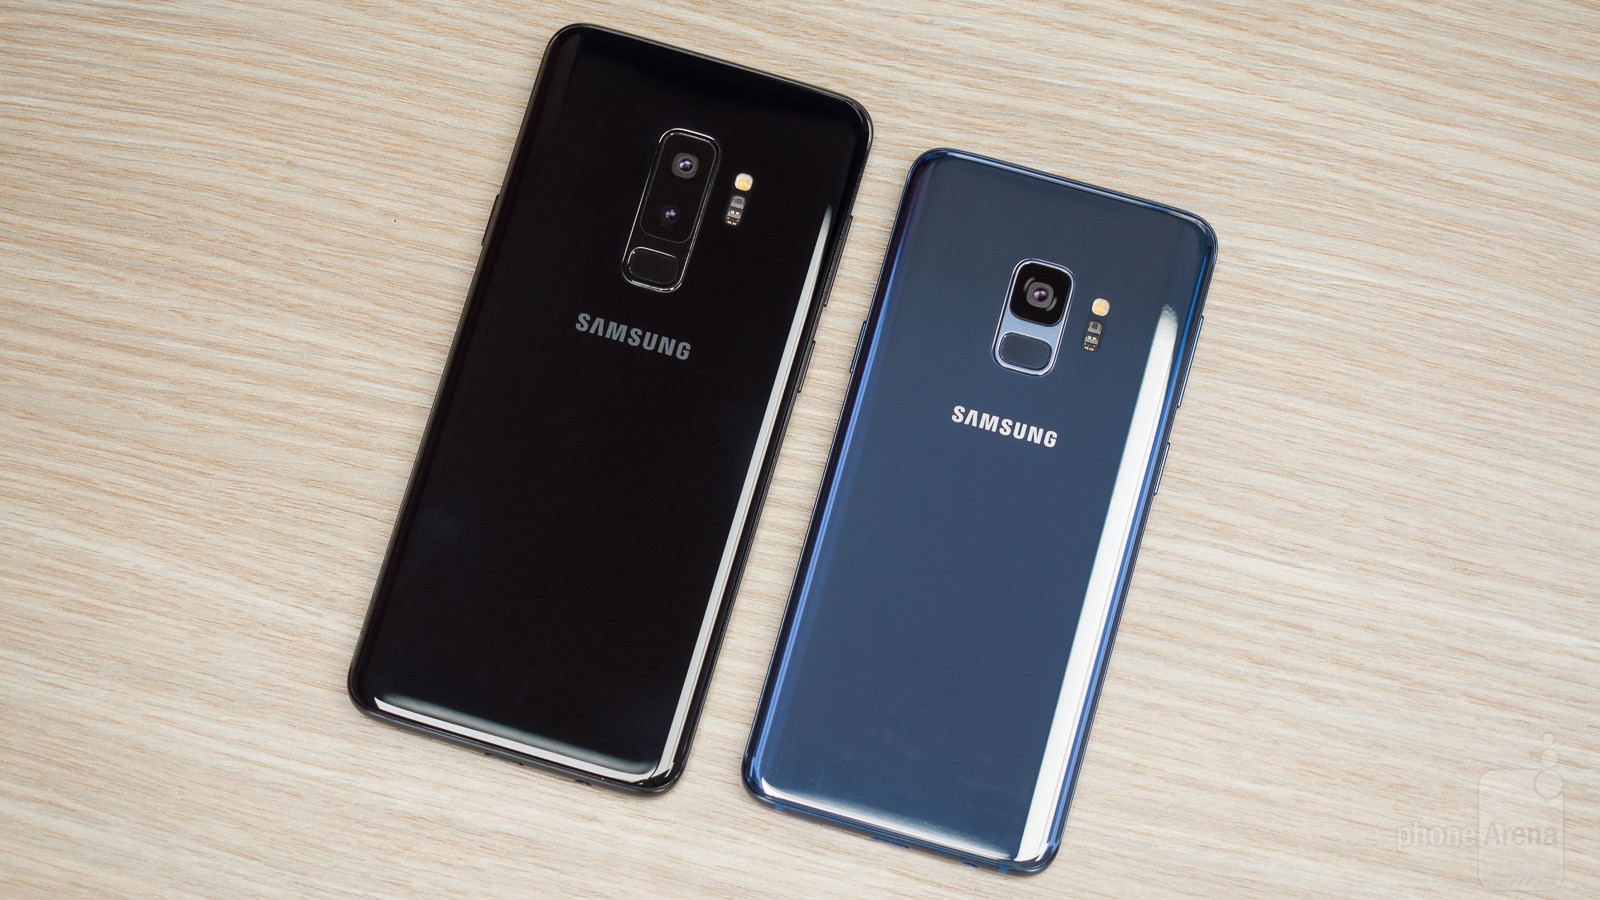 Samsung fuels theories that the Galaxy S9 and S9 Plus have had their One UI 2.0 and Android 10 updates rescheduled - Notebookcheck.net